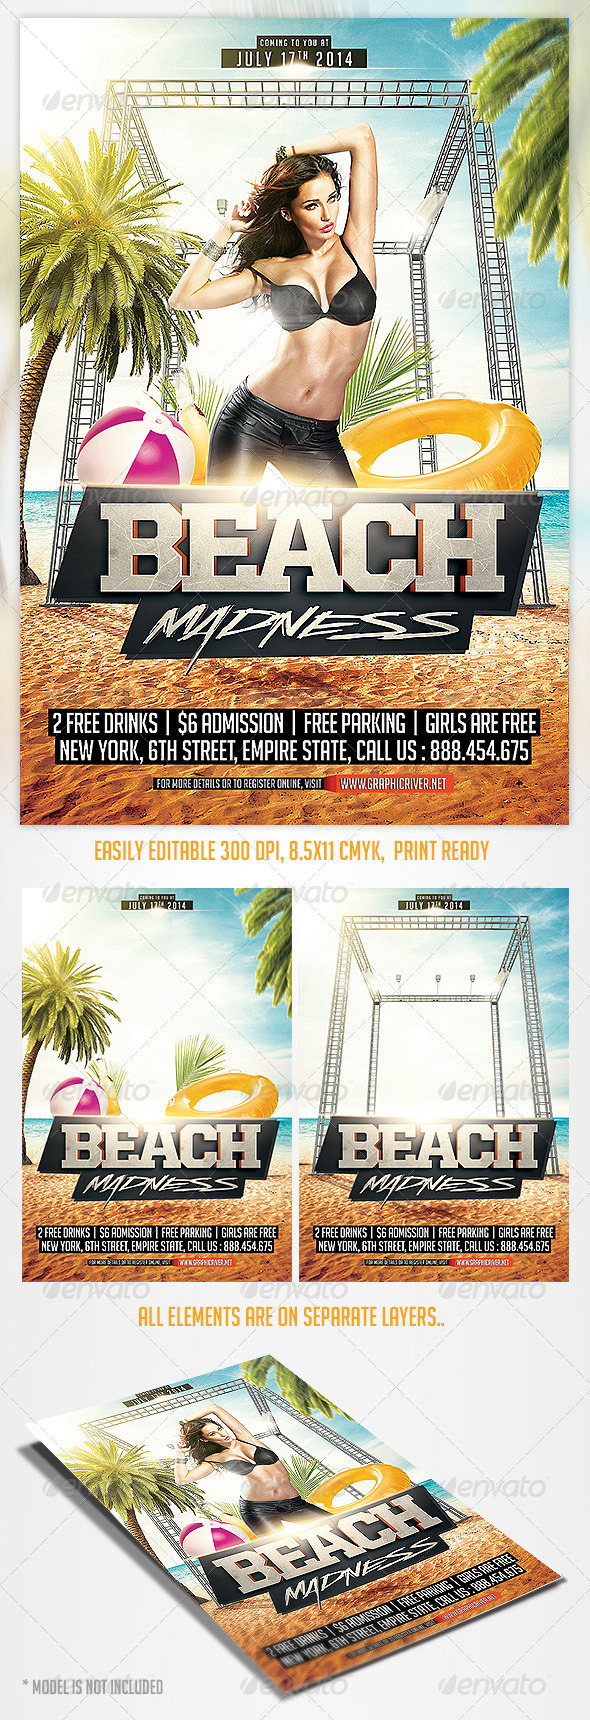 Summer Beach Madness Flyer Template - Print Templates